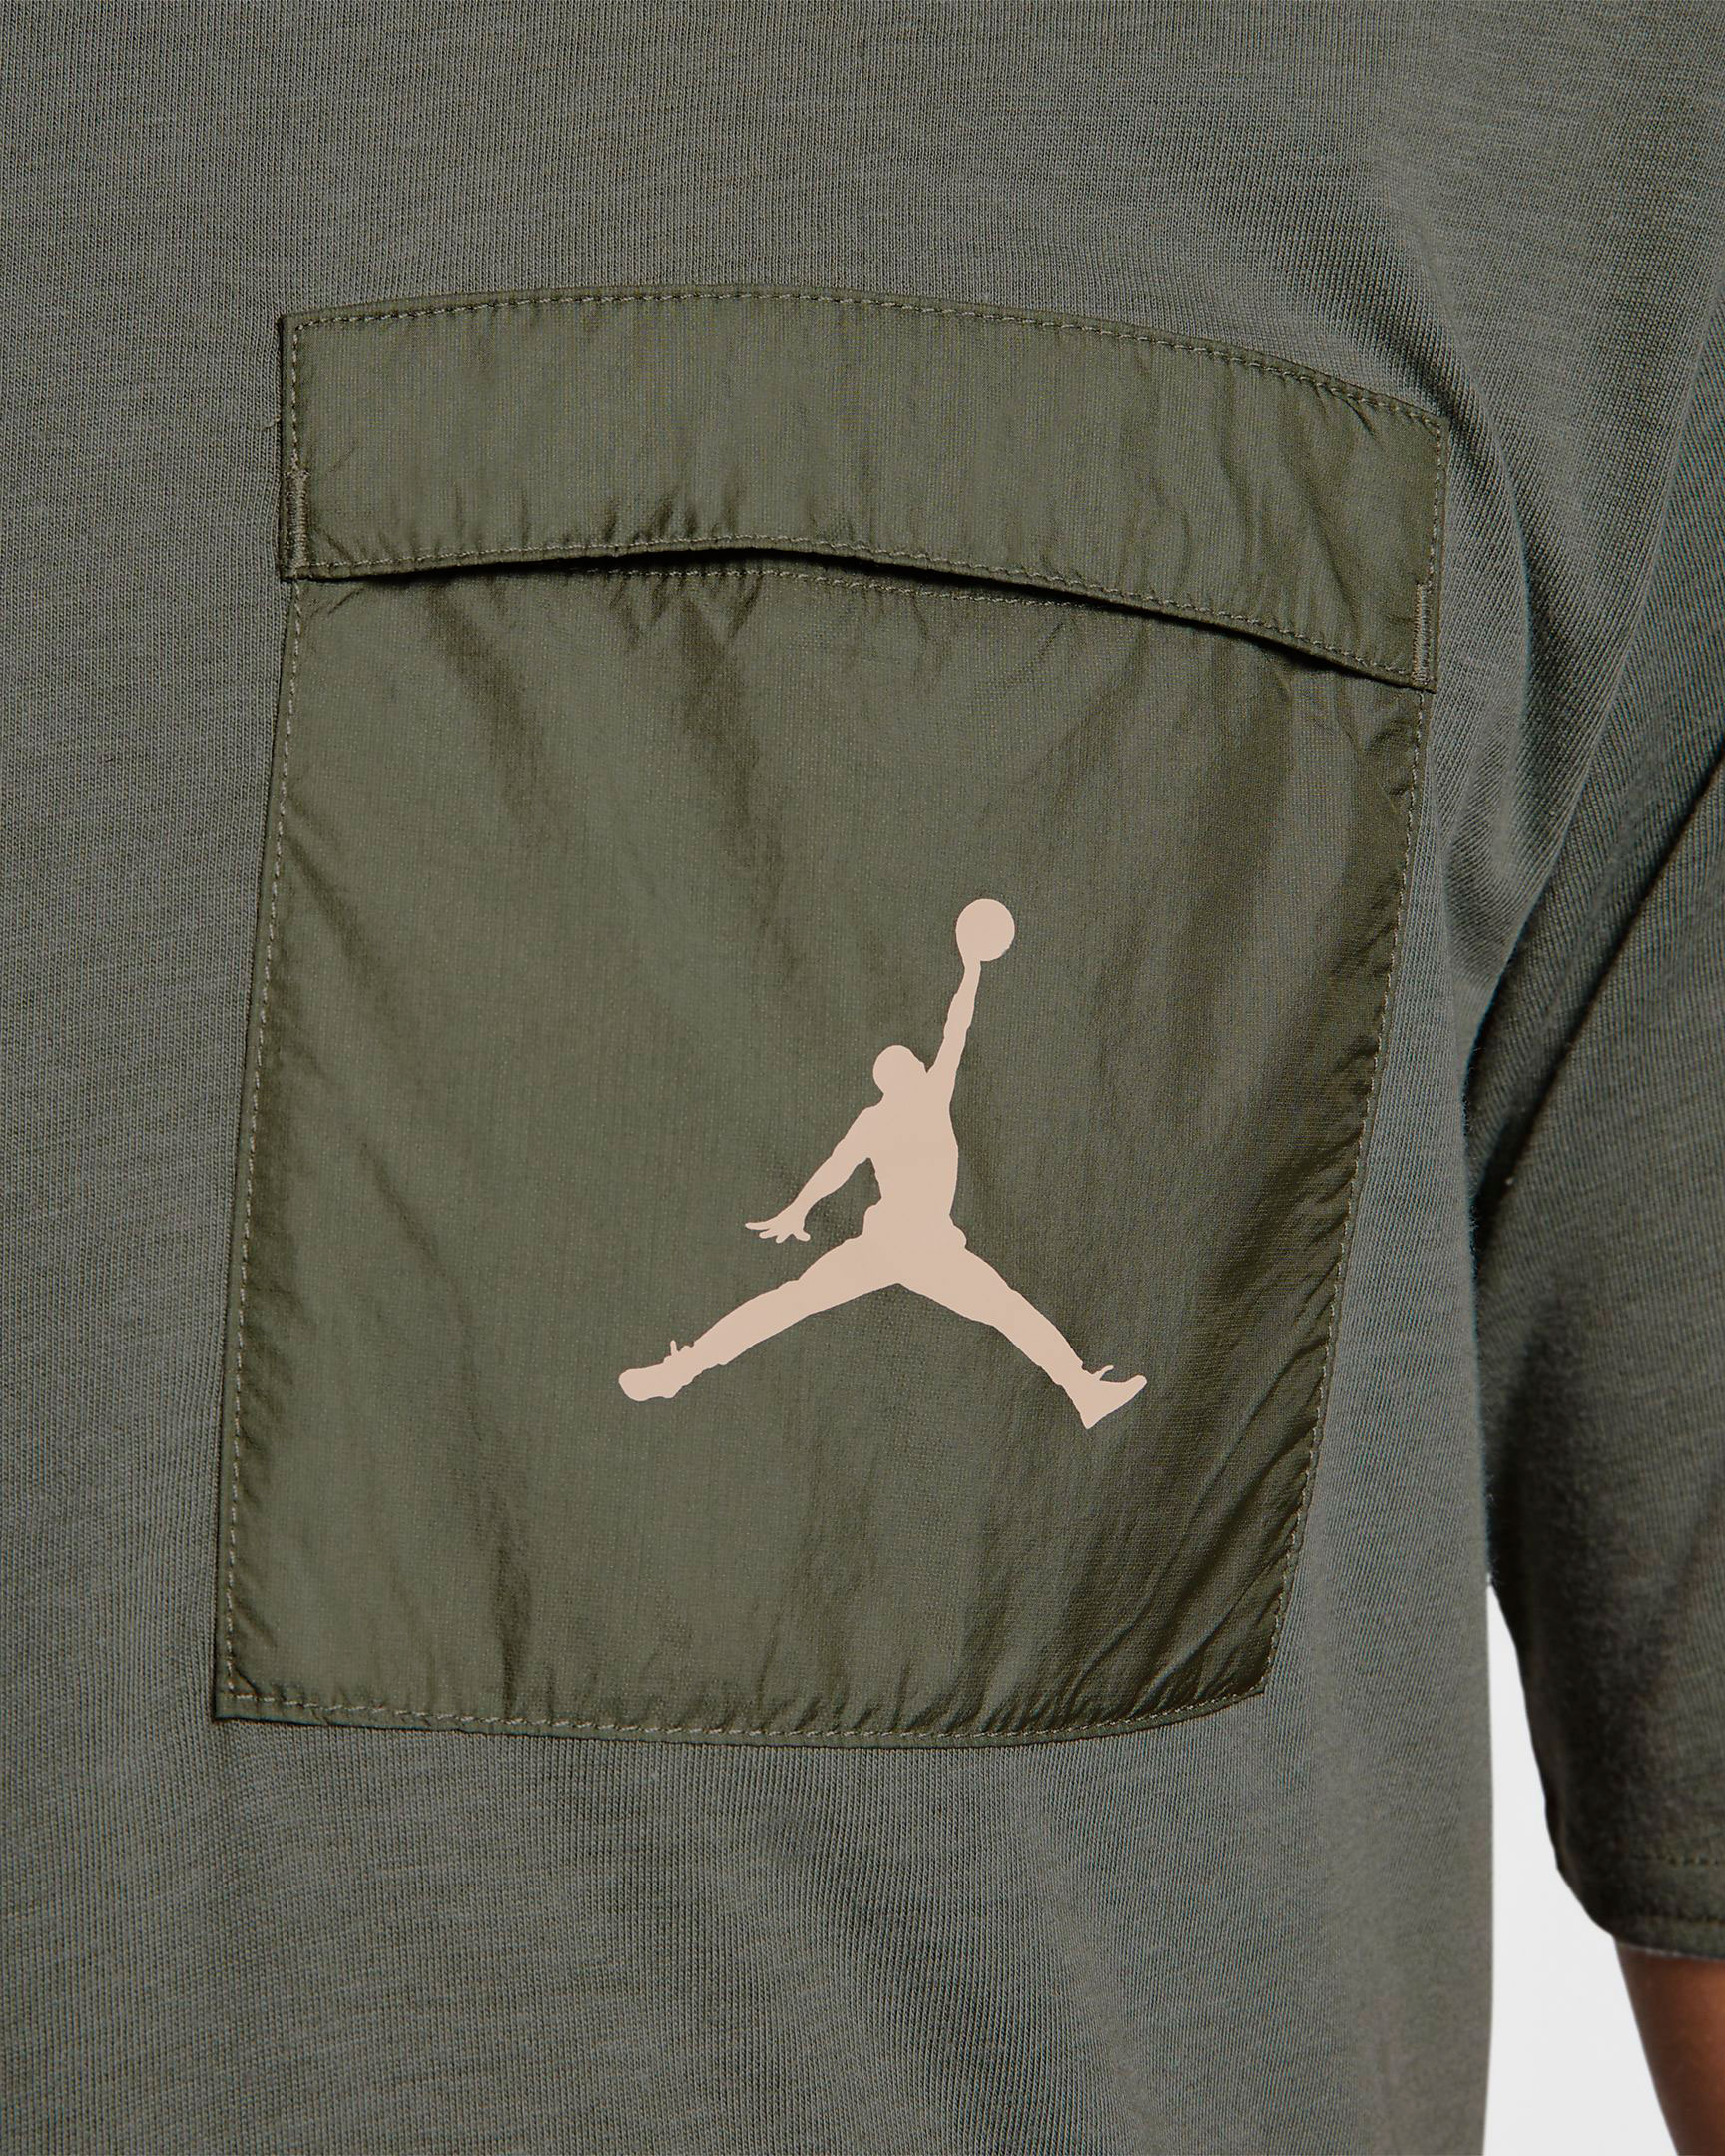 jordan-1-crimson-tint-shirt-match-3